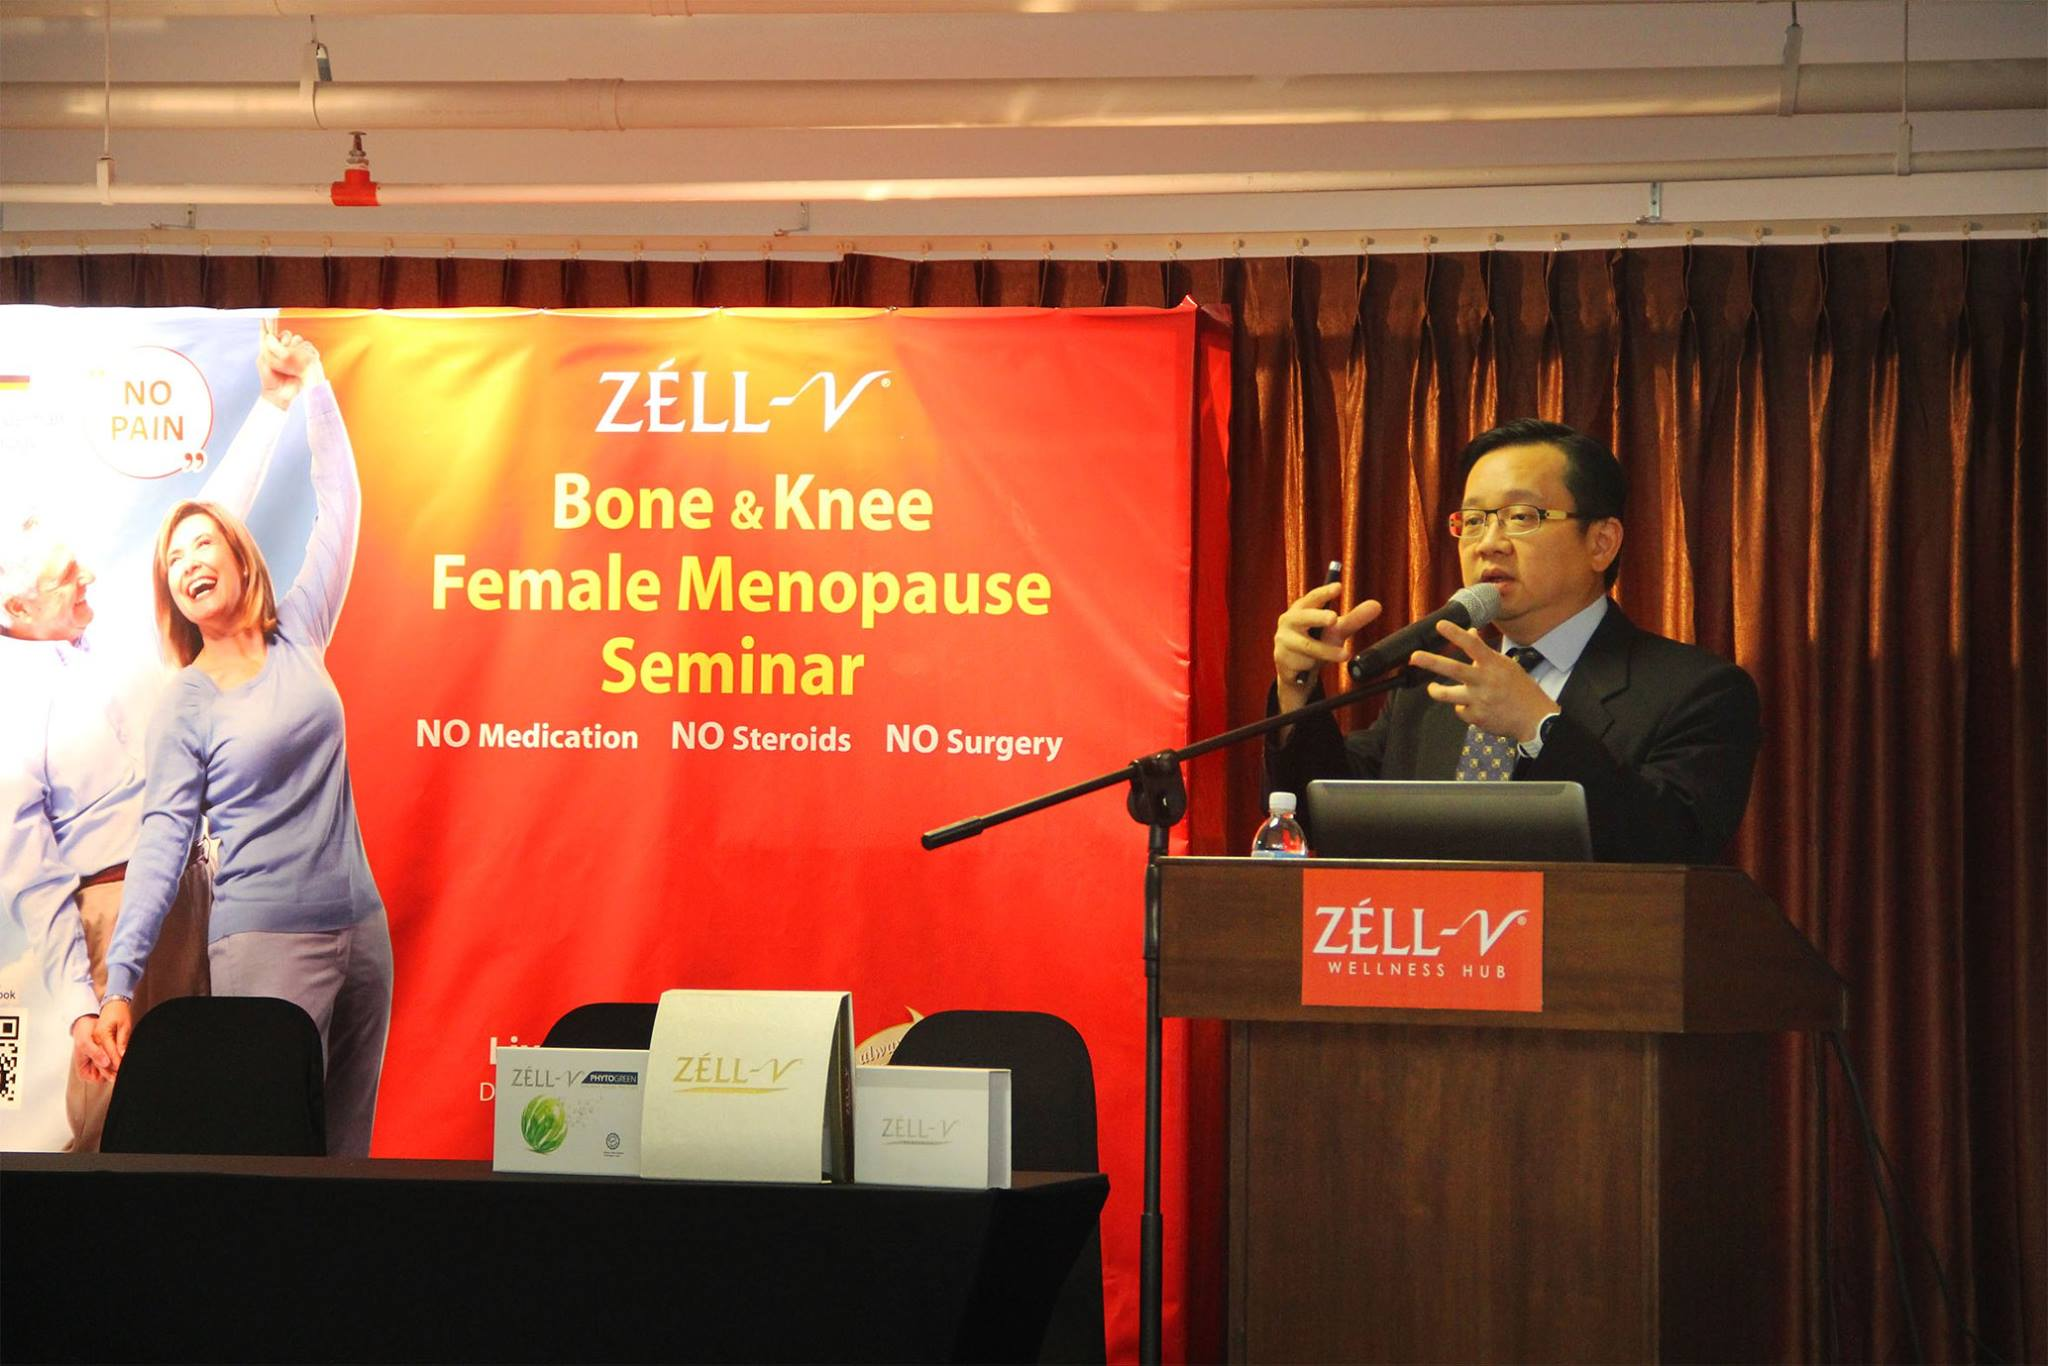 ZÈLL-V Bone & Knee and Female Menopause seminar